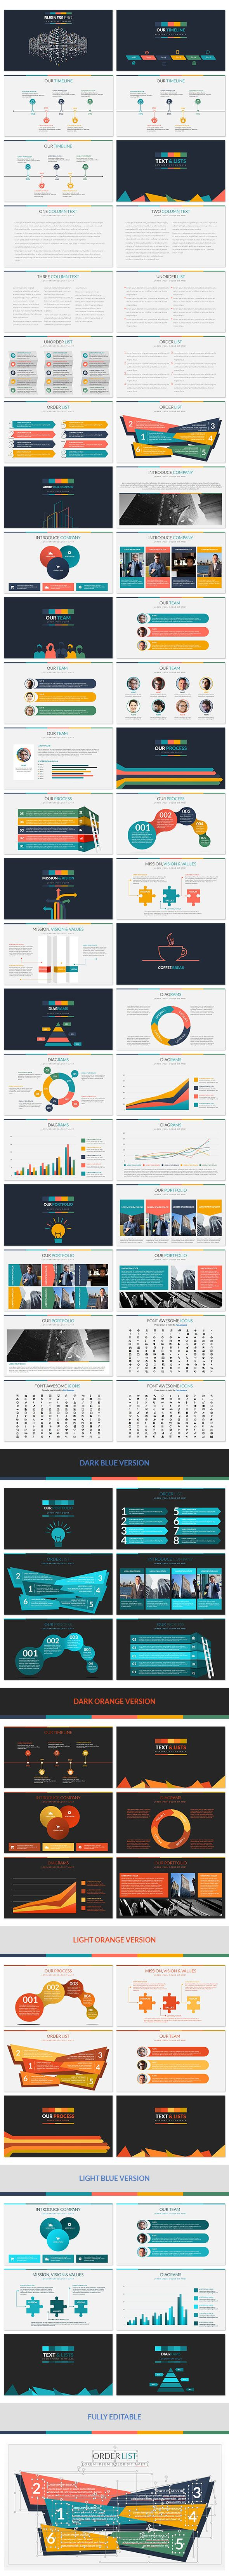 Business Pro PowerPoint Professional Business Template 89